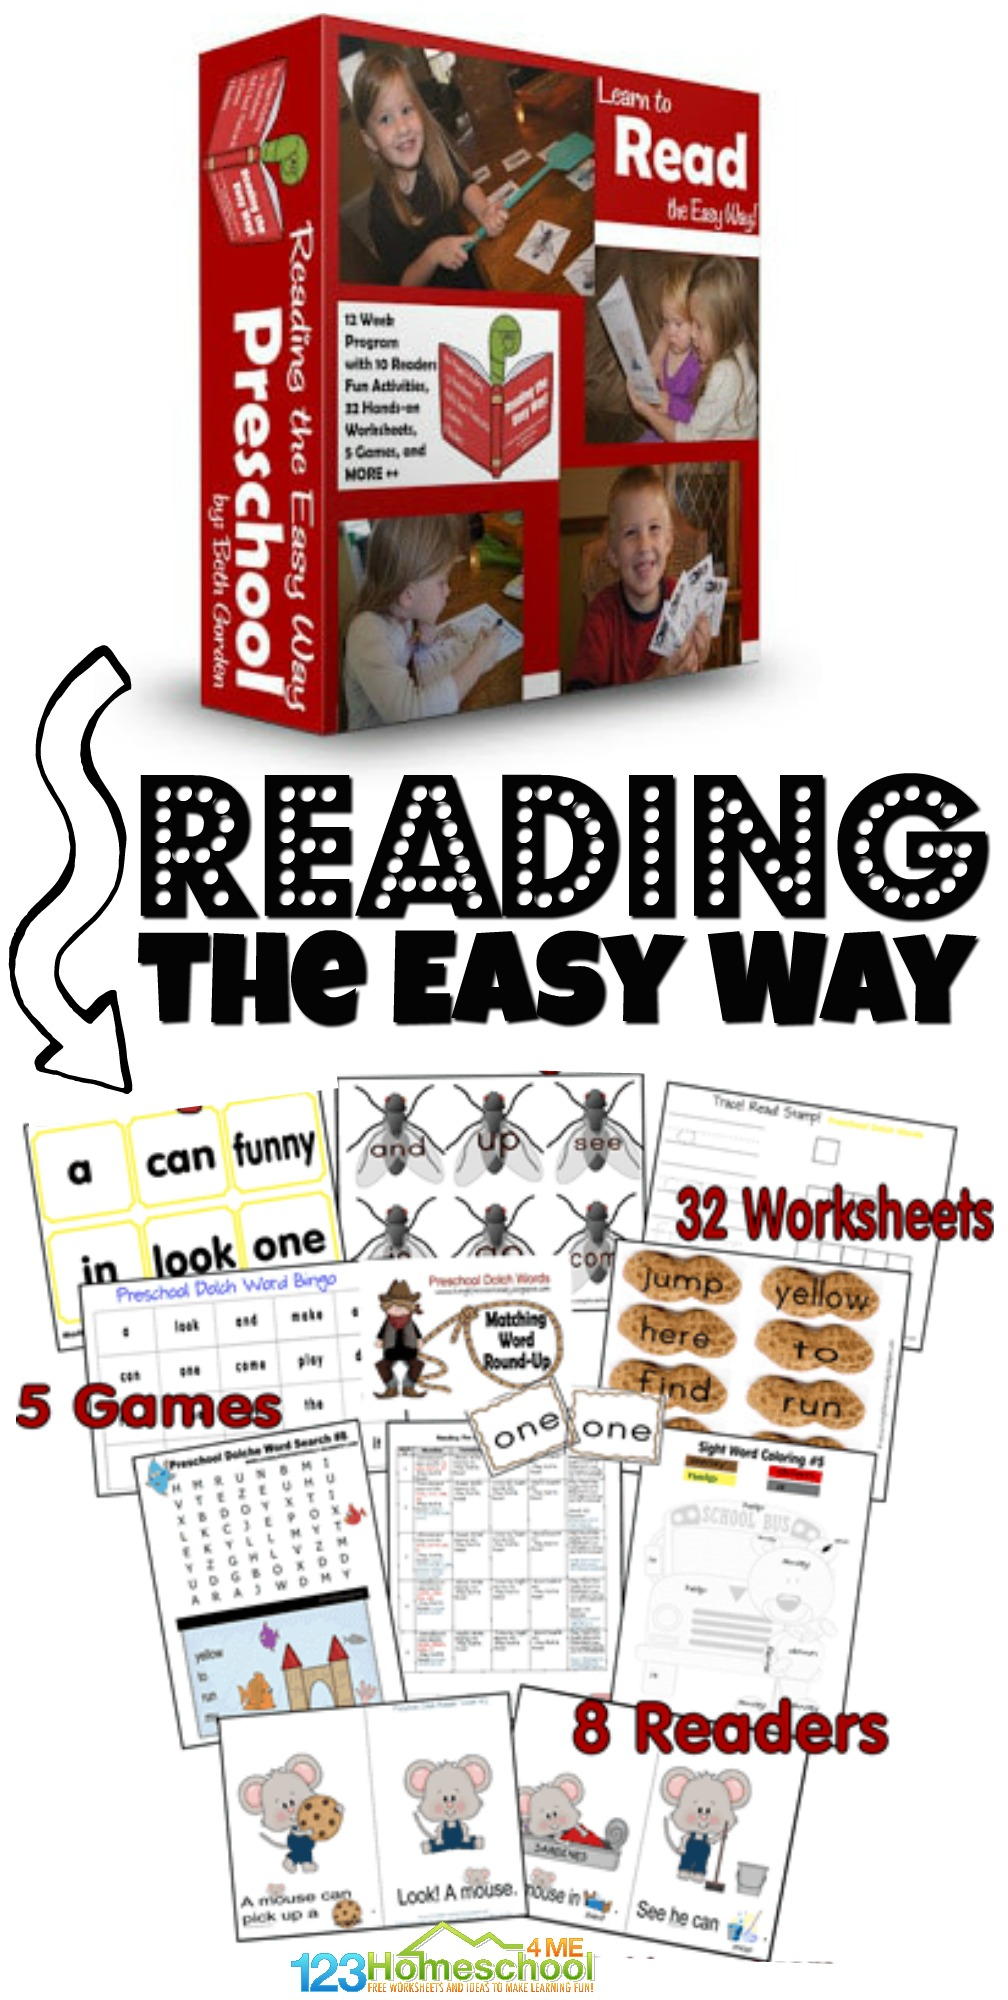 Finally a fun way for preschoolers to learn to read! Reading the Easy Way is a 12 week preschool reading program that helps pre-k students master preschool sight words. The homeschool reading program includes lots of FUN preschool sight words activities including 6 games, fun worksheets (like color by sight word), readers, and more to help Preschoolers learn to read the EASYway.